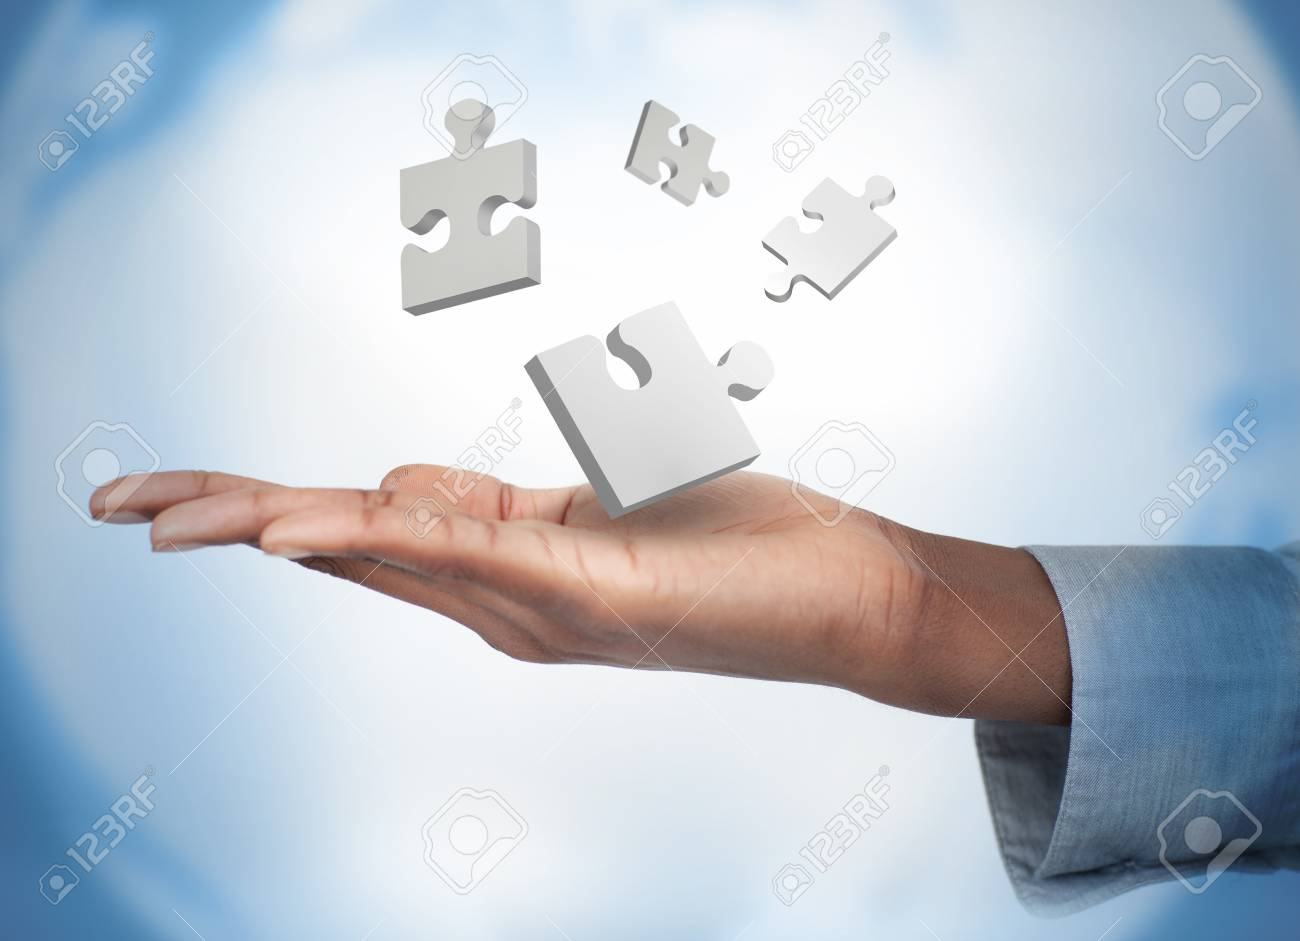 Hand with digital white puzzles against a digital background Stock Photo - 18132209